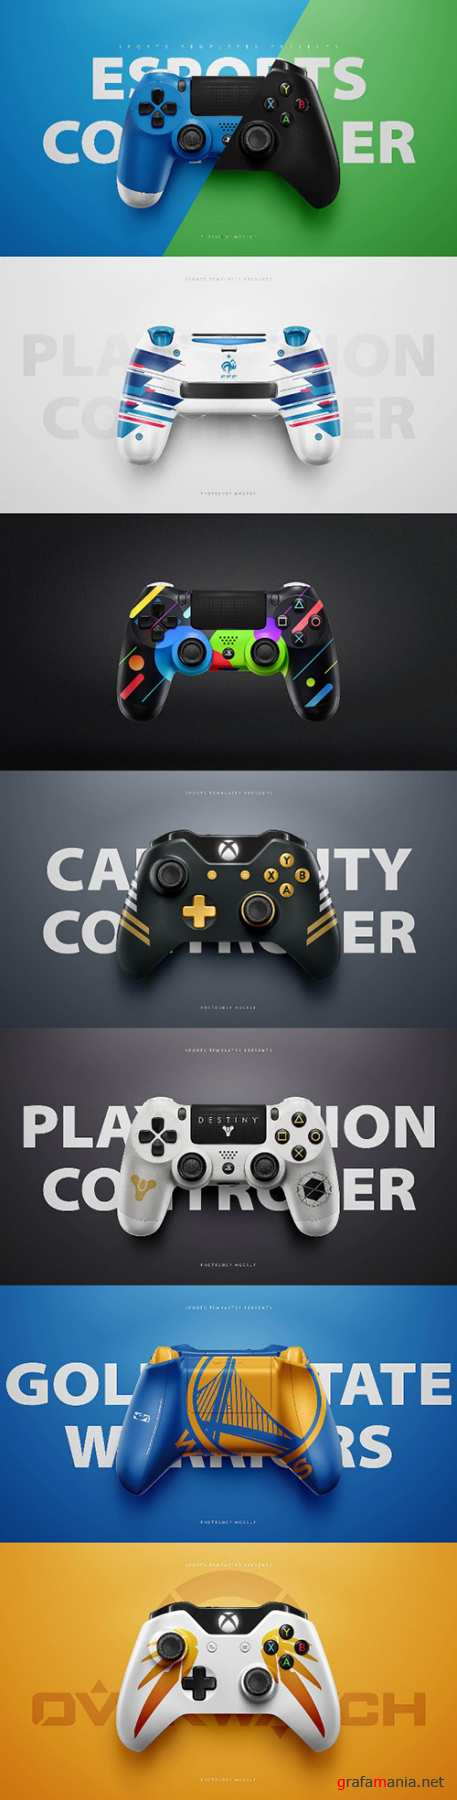 Playstation 4 & Xbox One Controllers Photoshop Psd Templates PSD